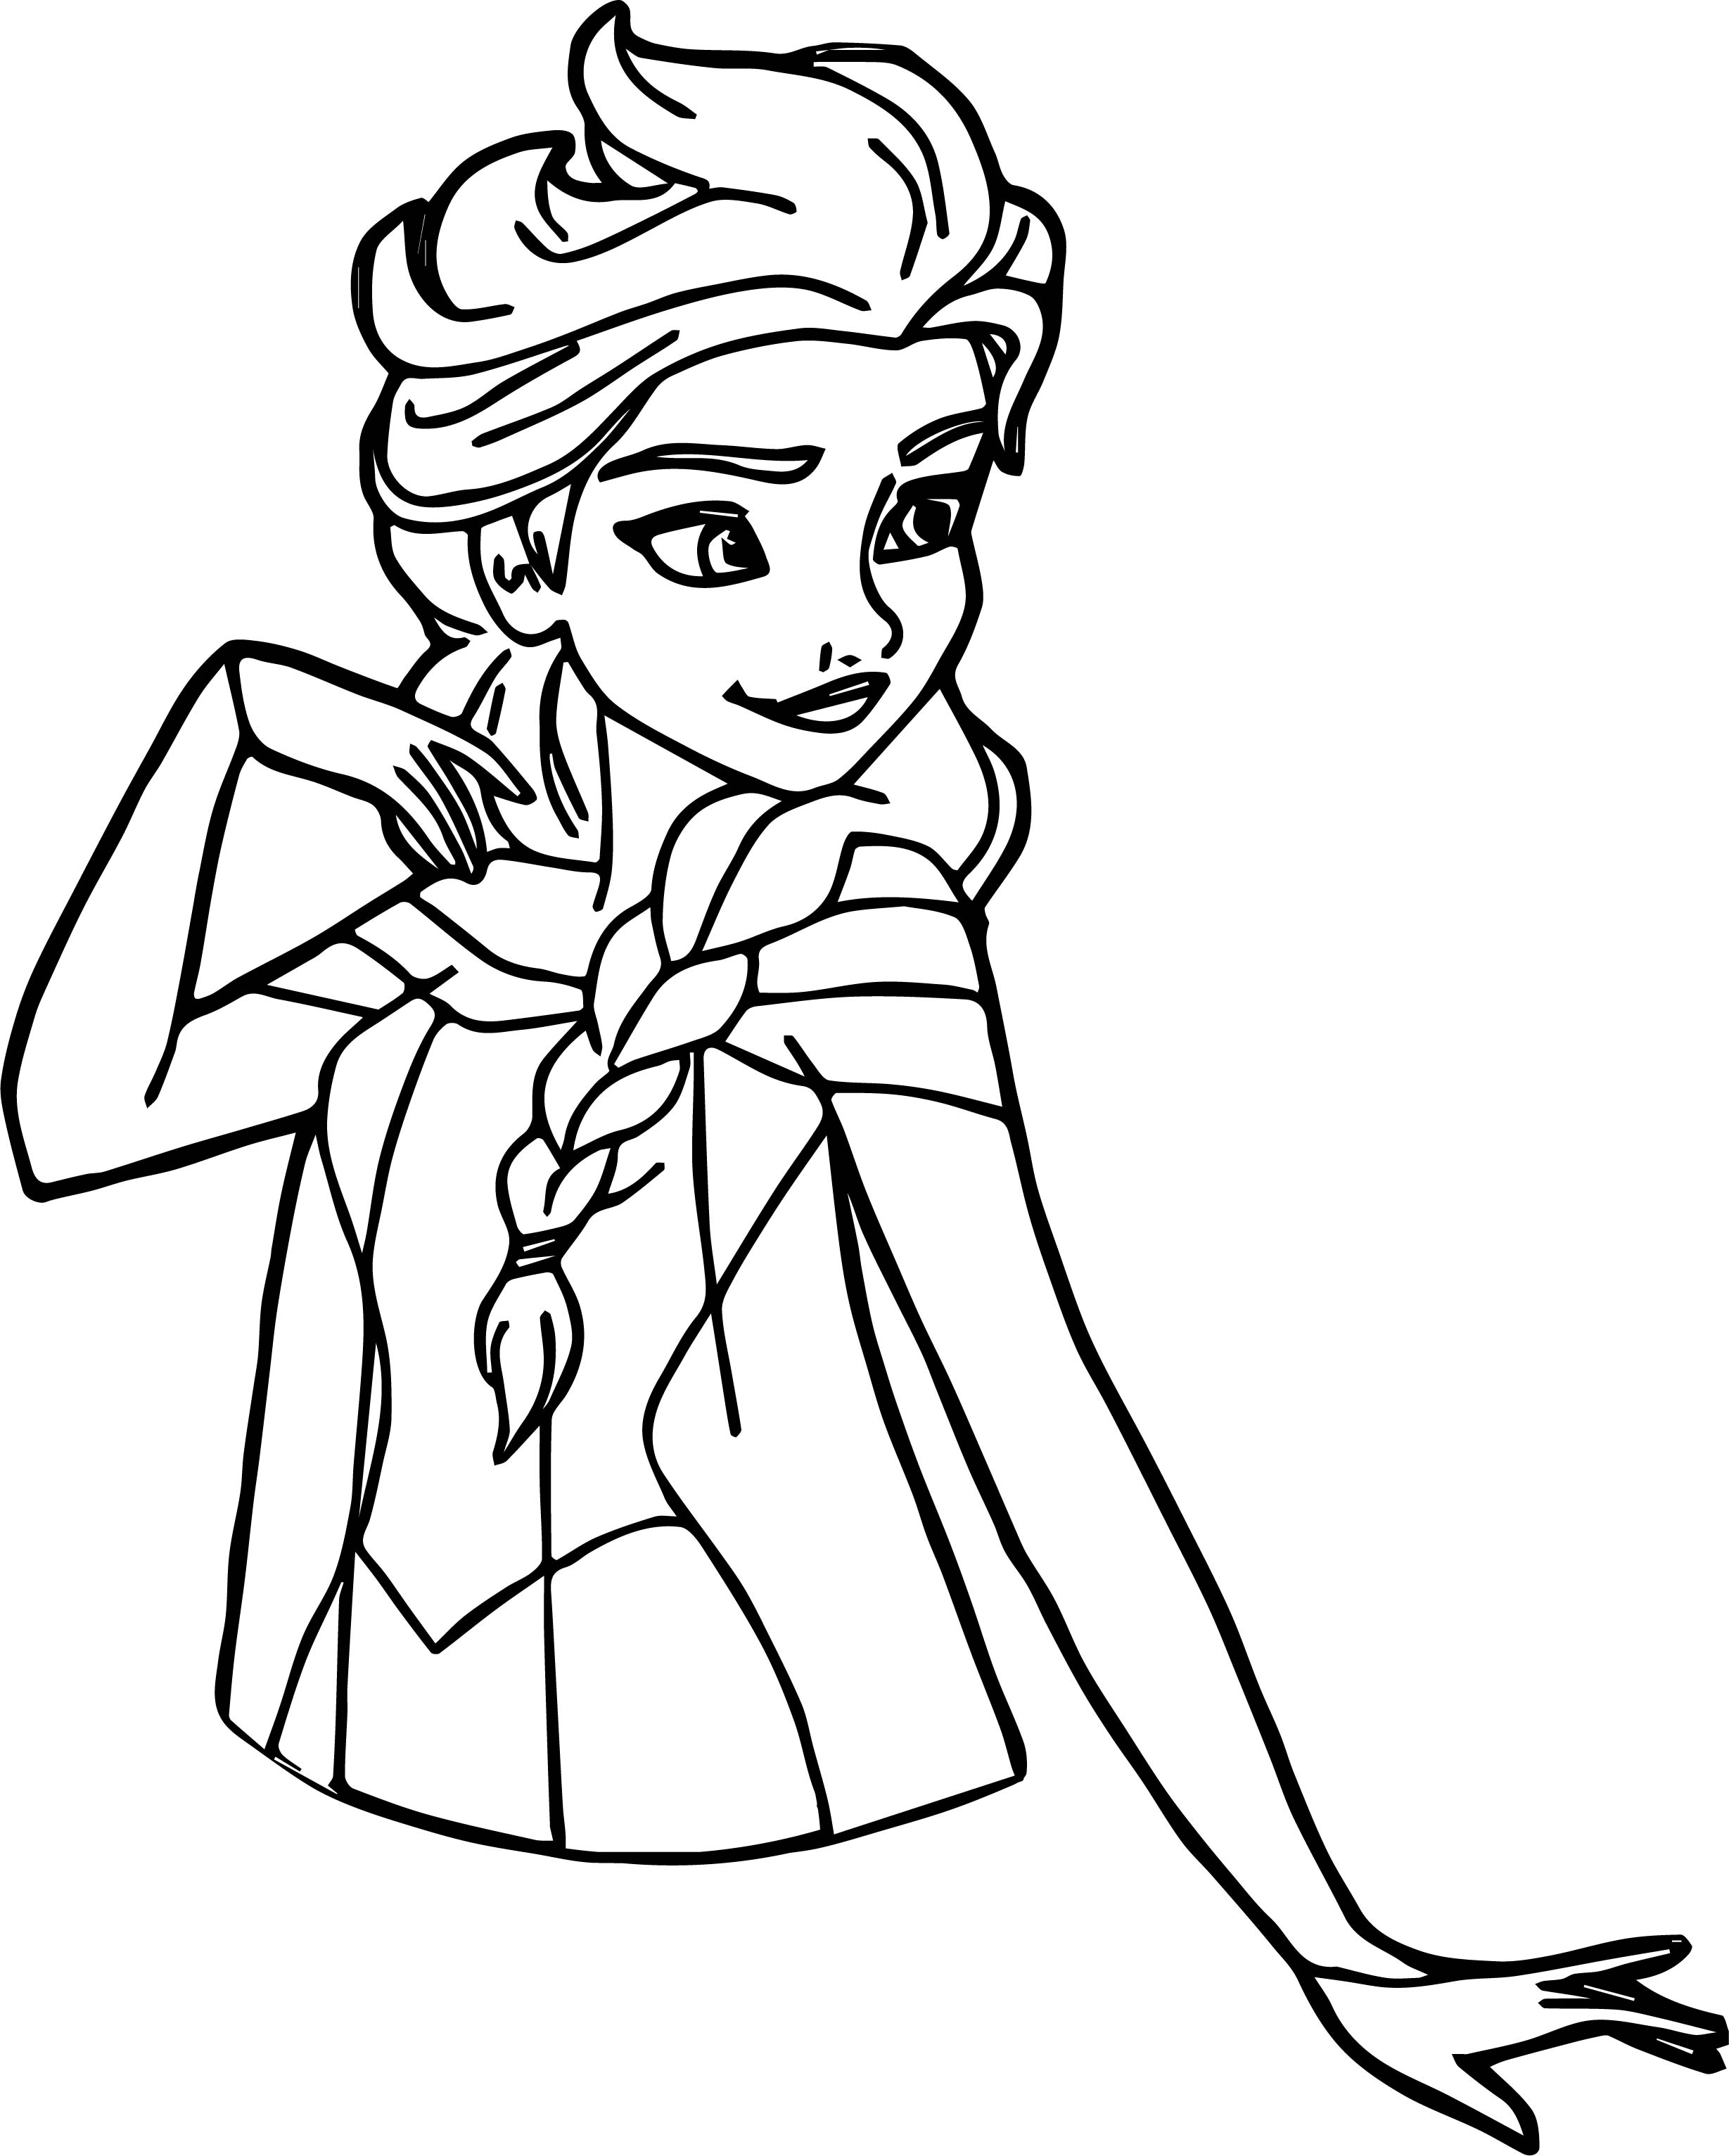 free coloring pages for girls frozen dresses | Elsa Pose Coloring Page | Wecoloringpage.com